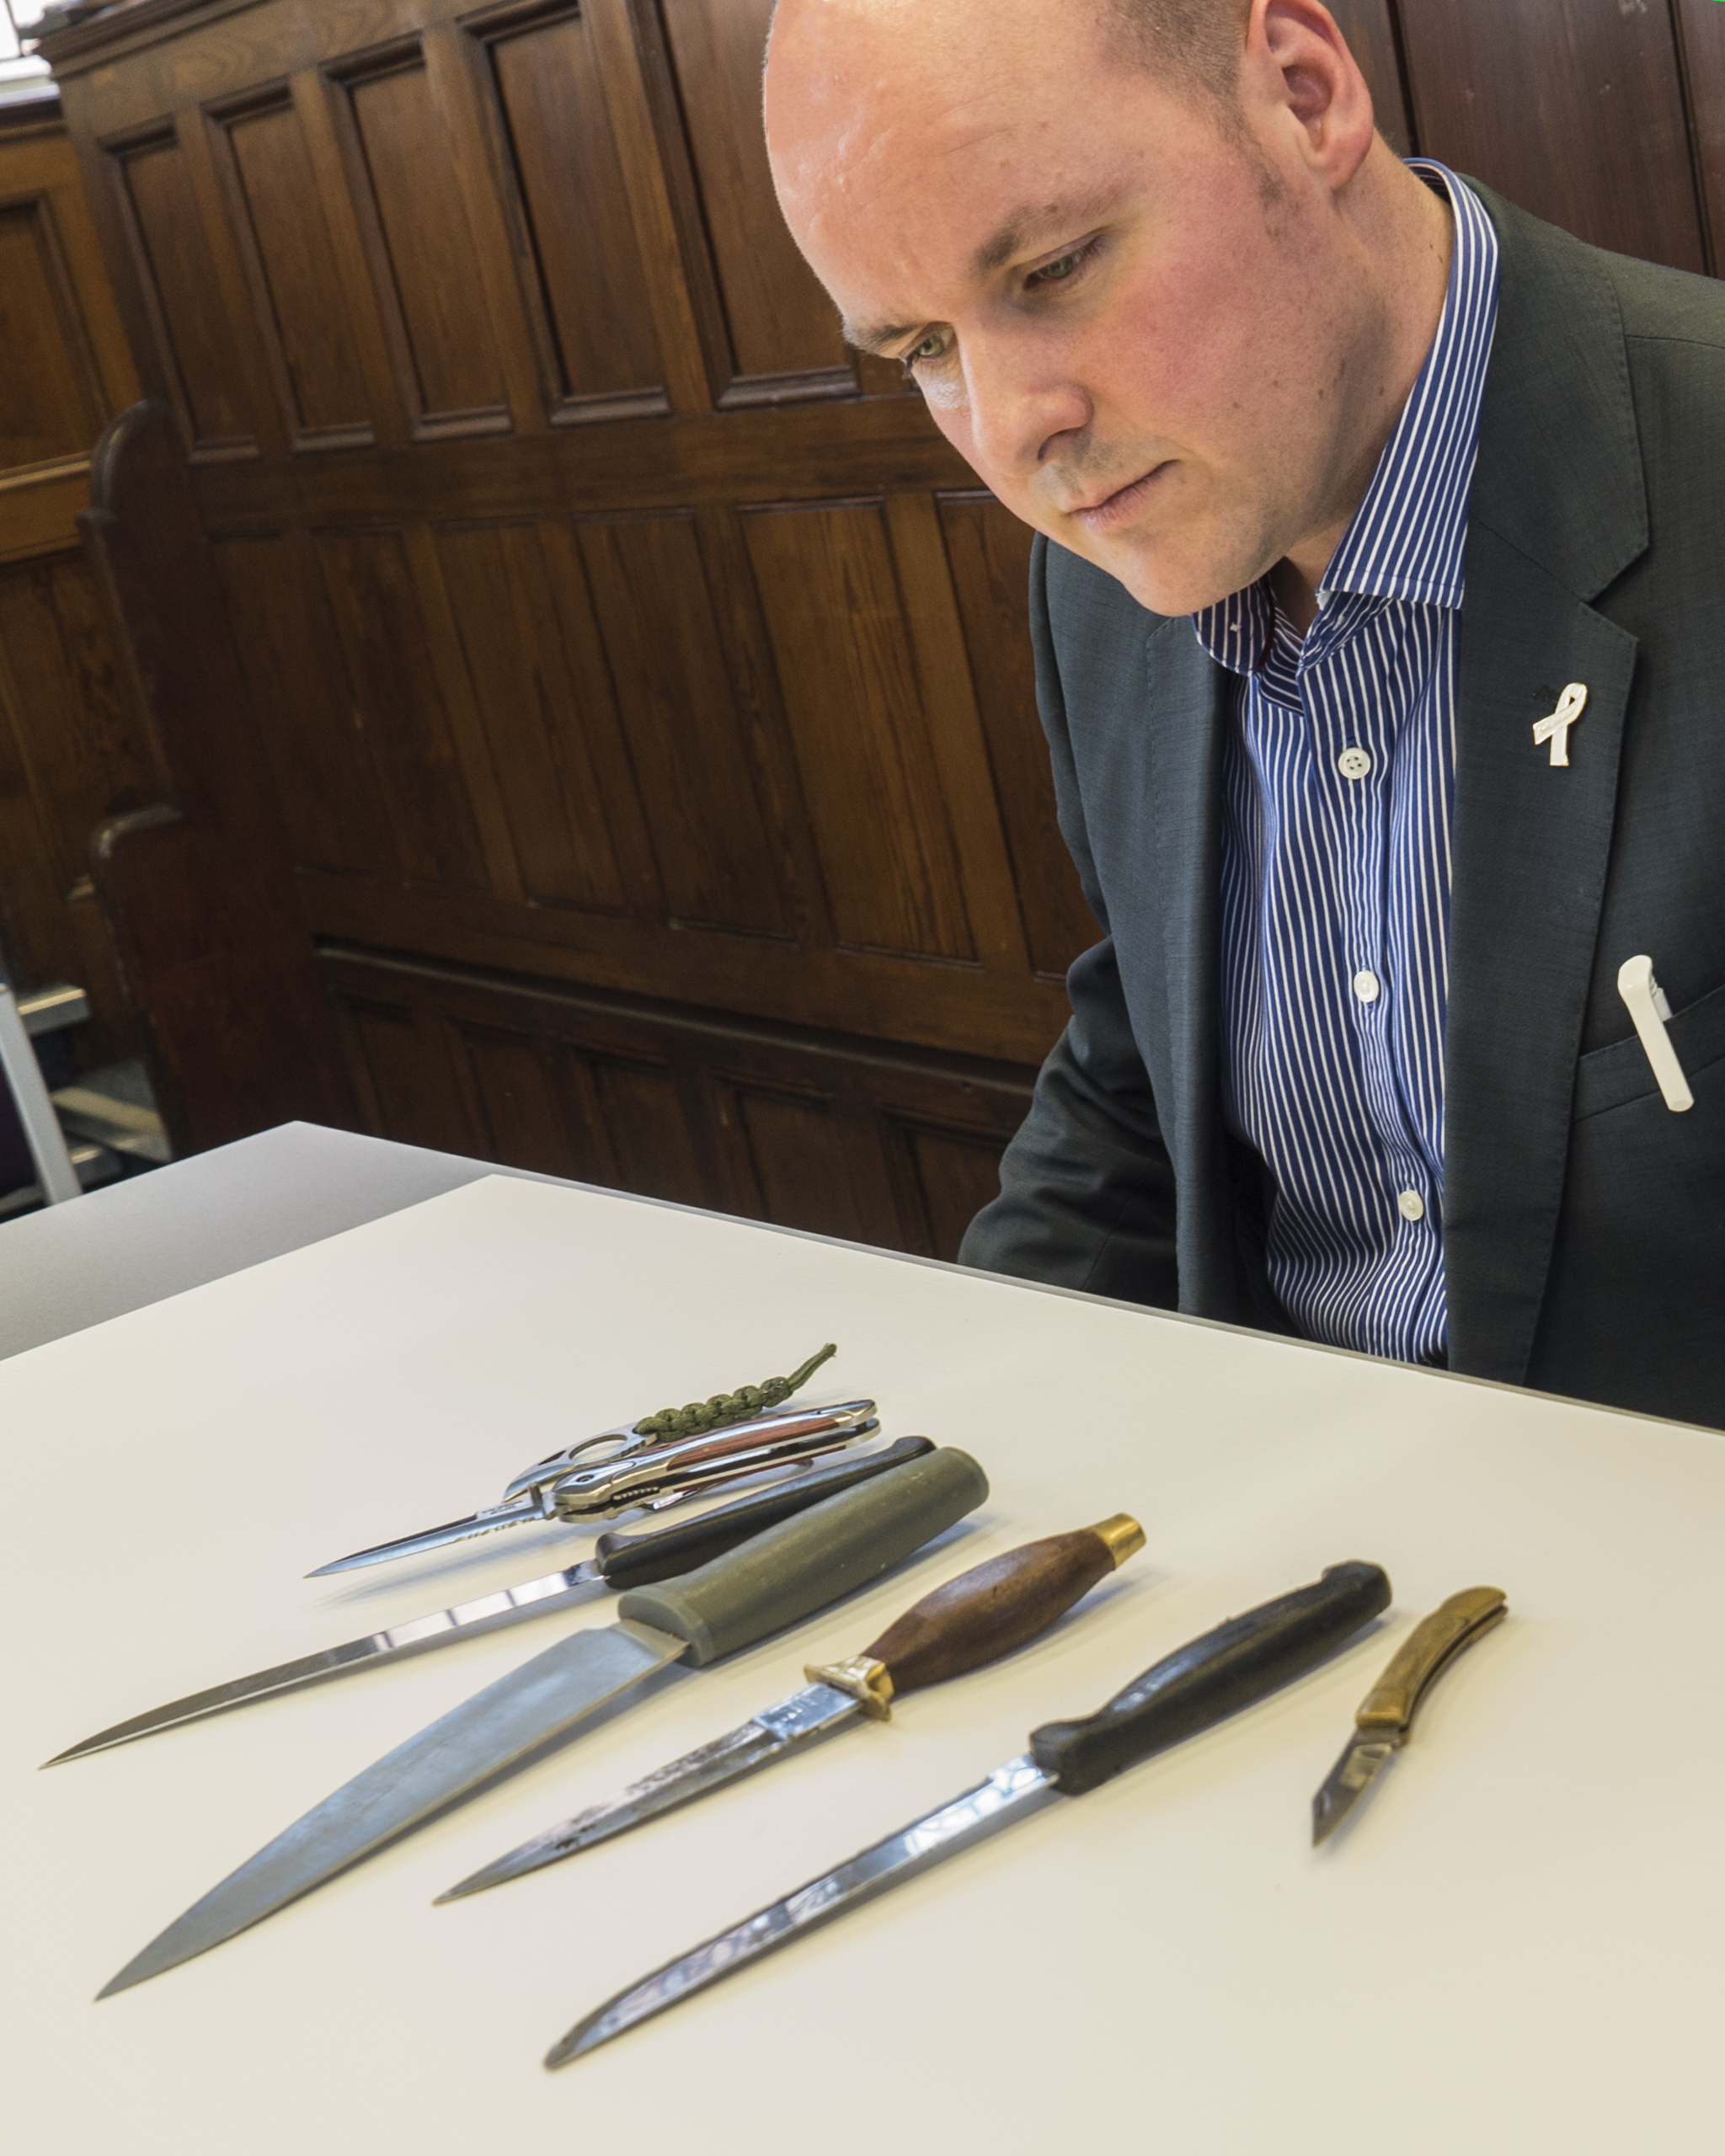 David Keane examining seized knives